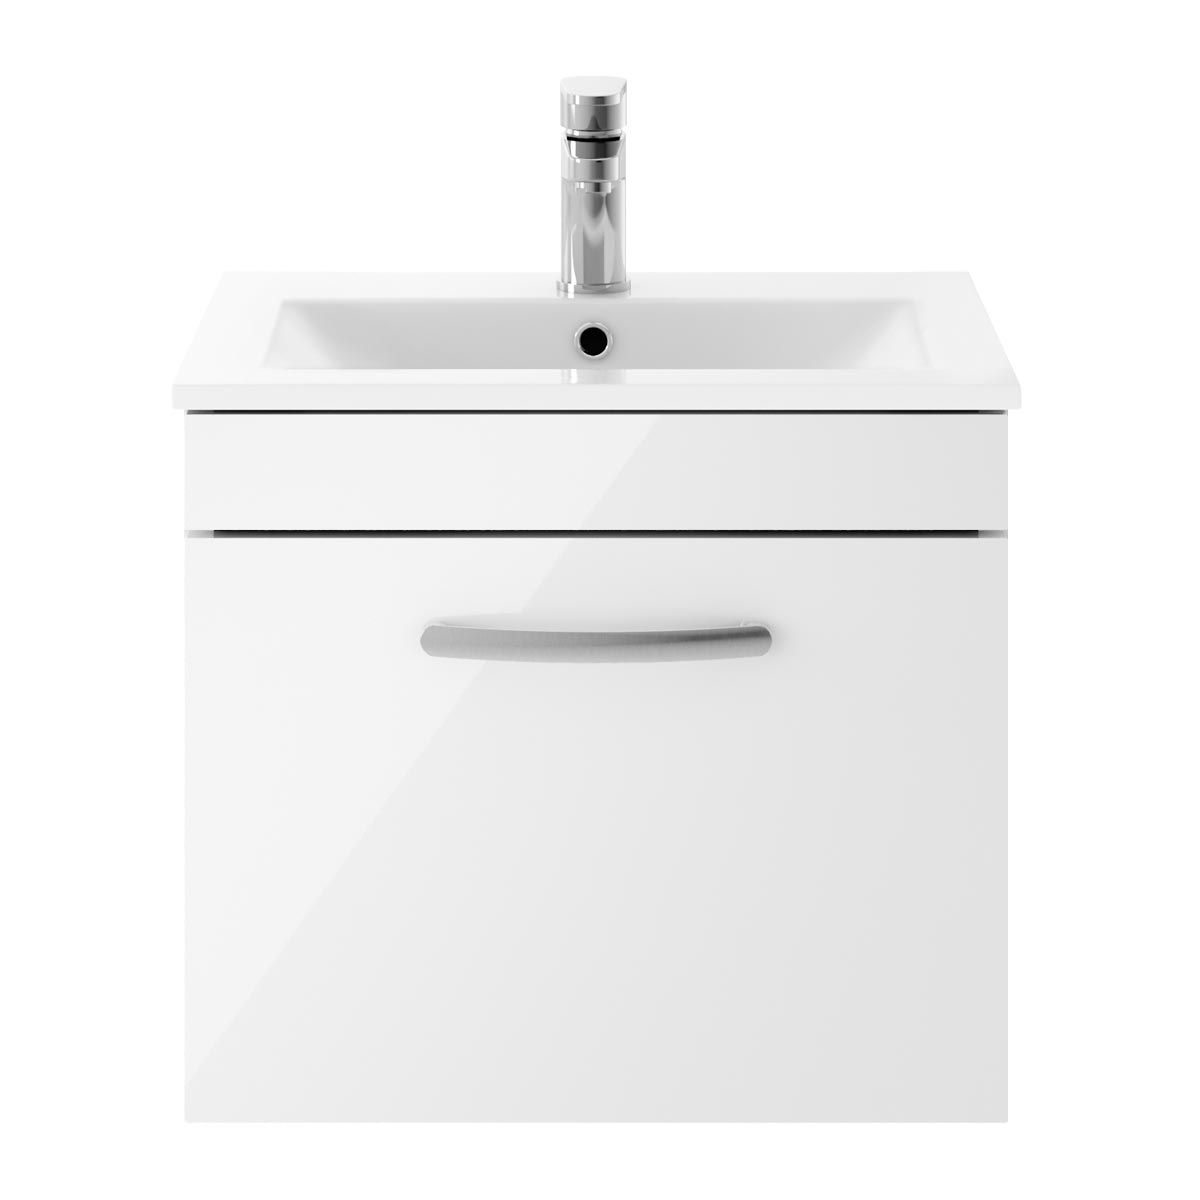 Nuie Athena Gloss White 1 Drawer Wall Hung Vanity Unit with 18mm Profile  Basin 500mm